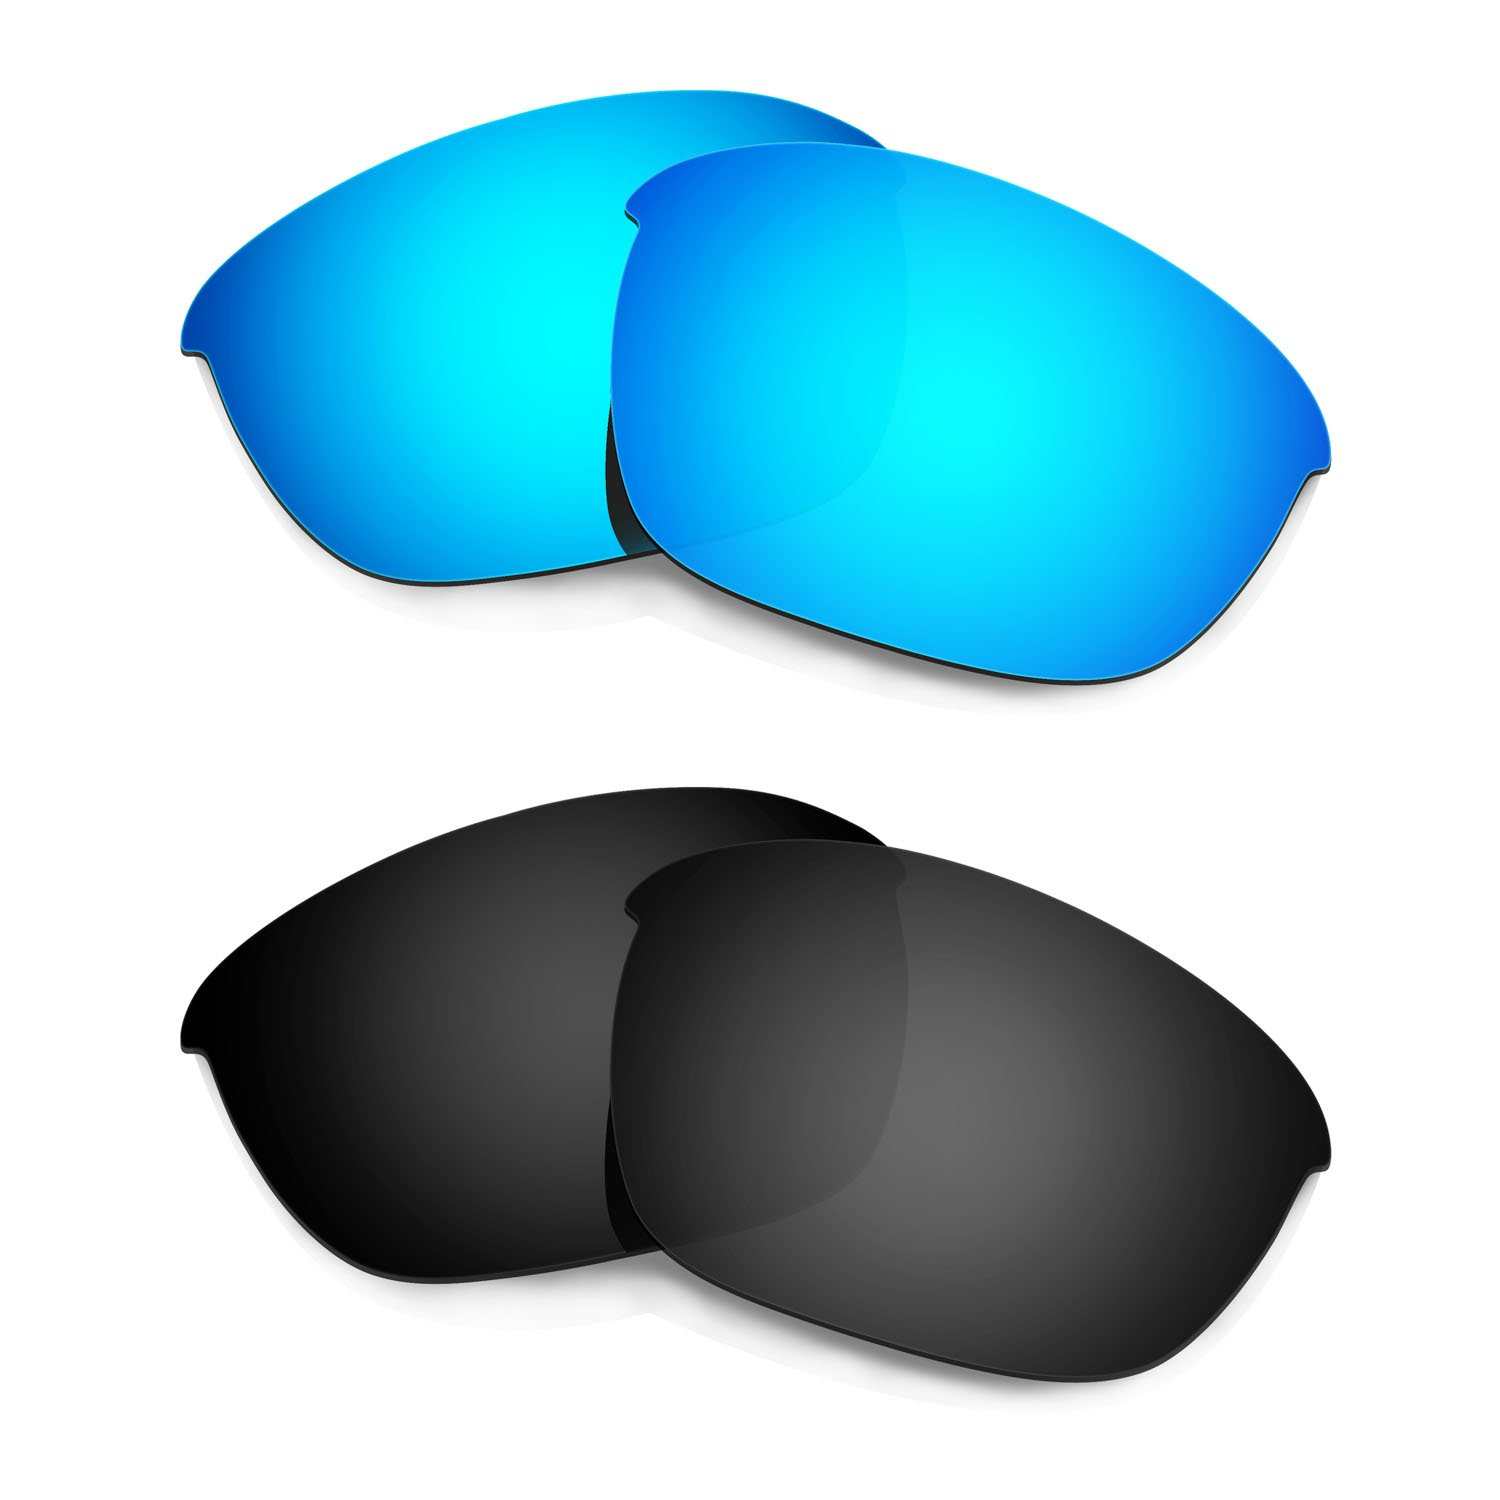 HKUCO Mens Replacement Lenses For Oakley Flak 2.0-3 pair VJ18jccZEO